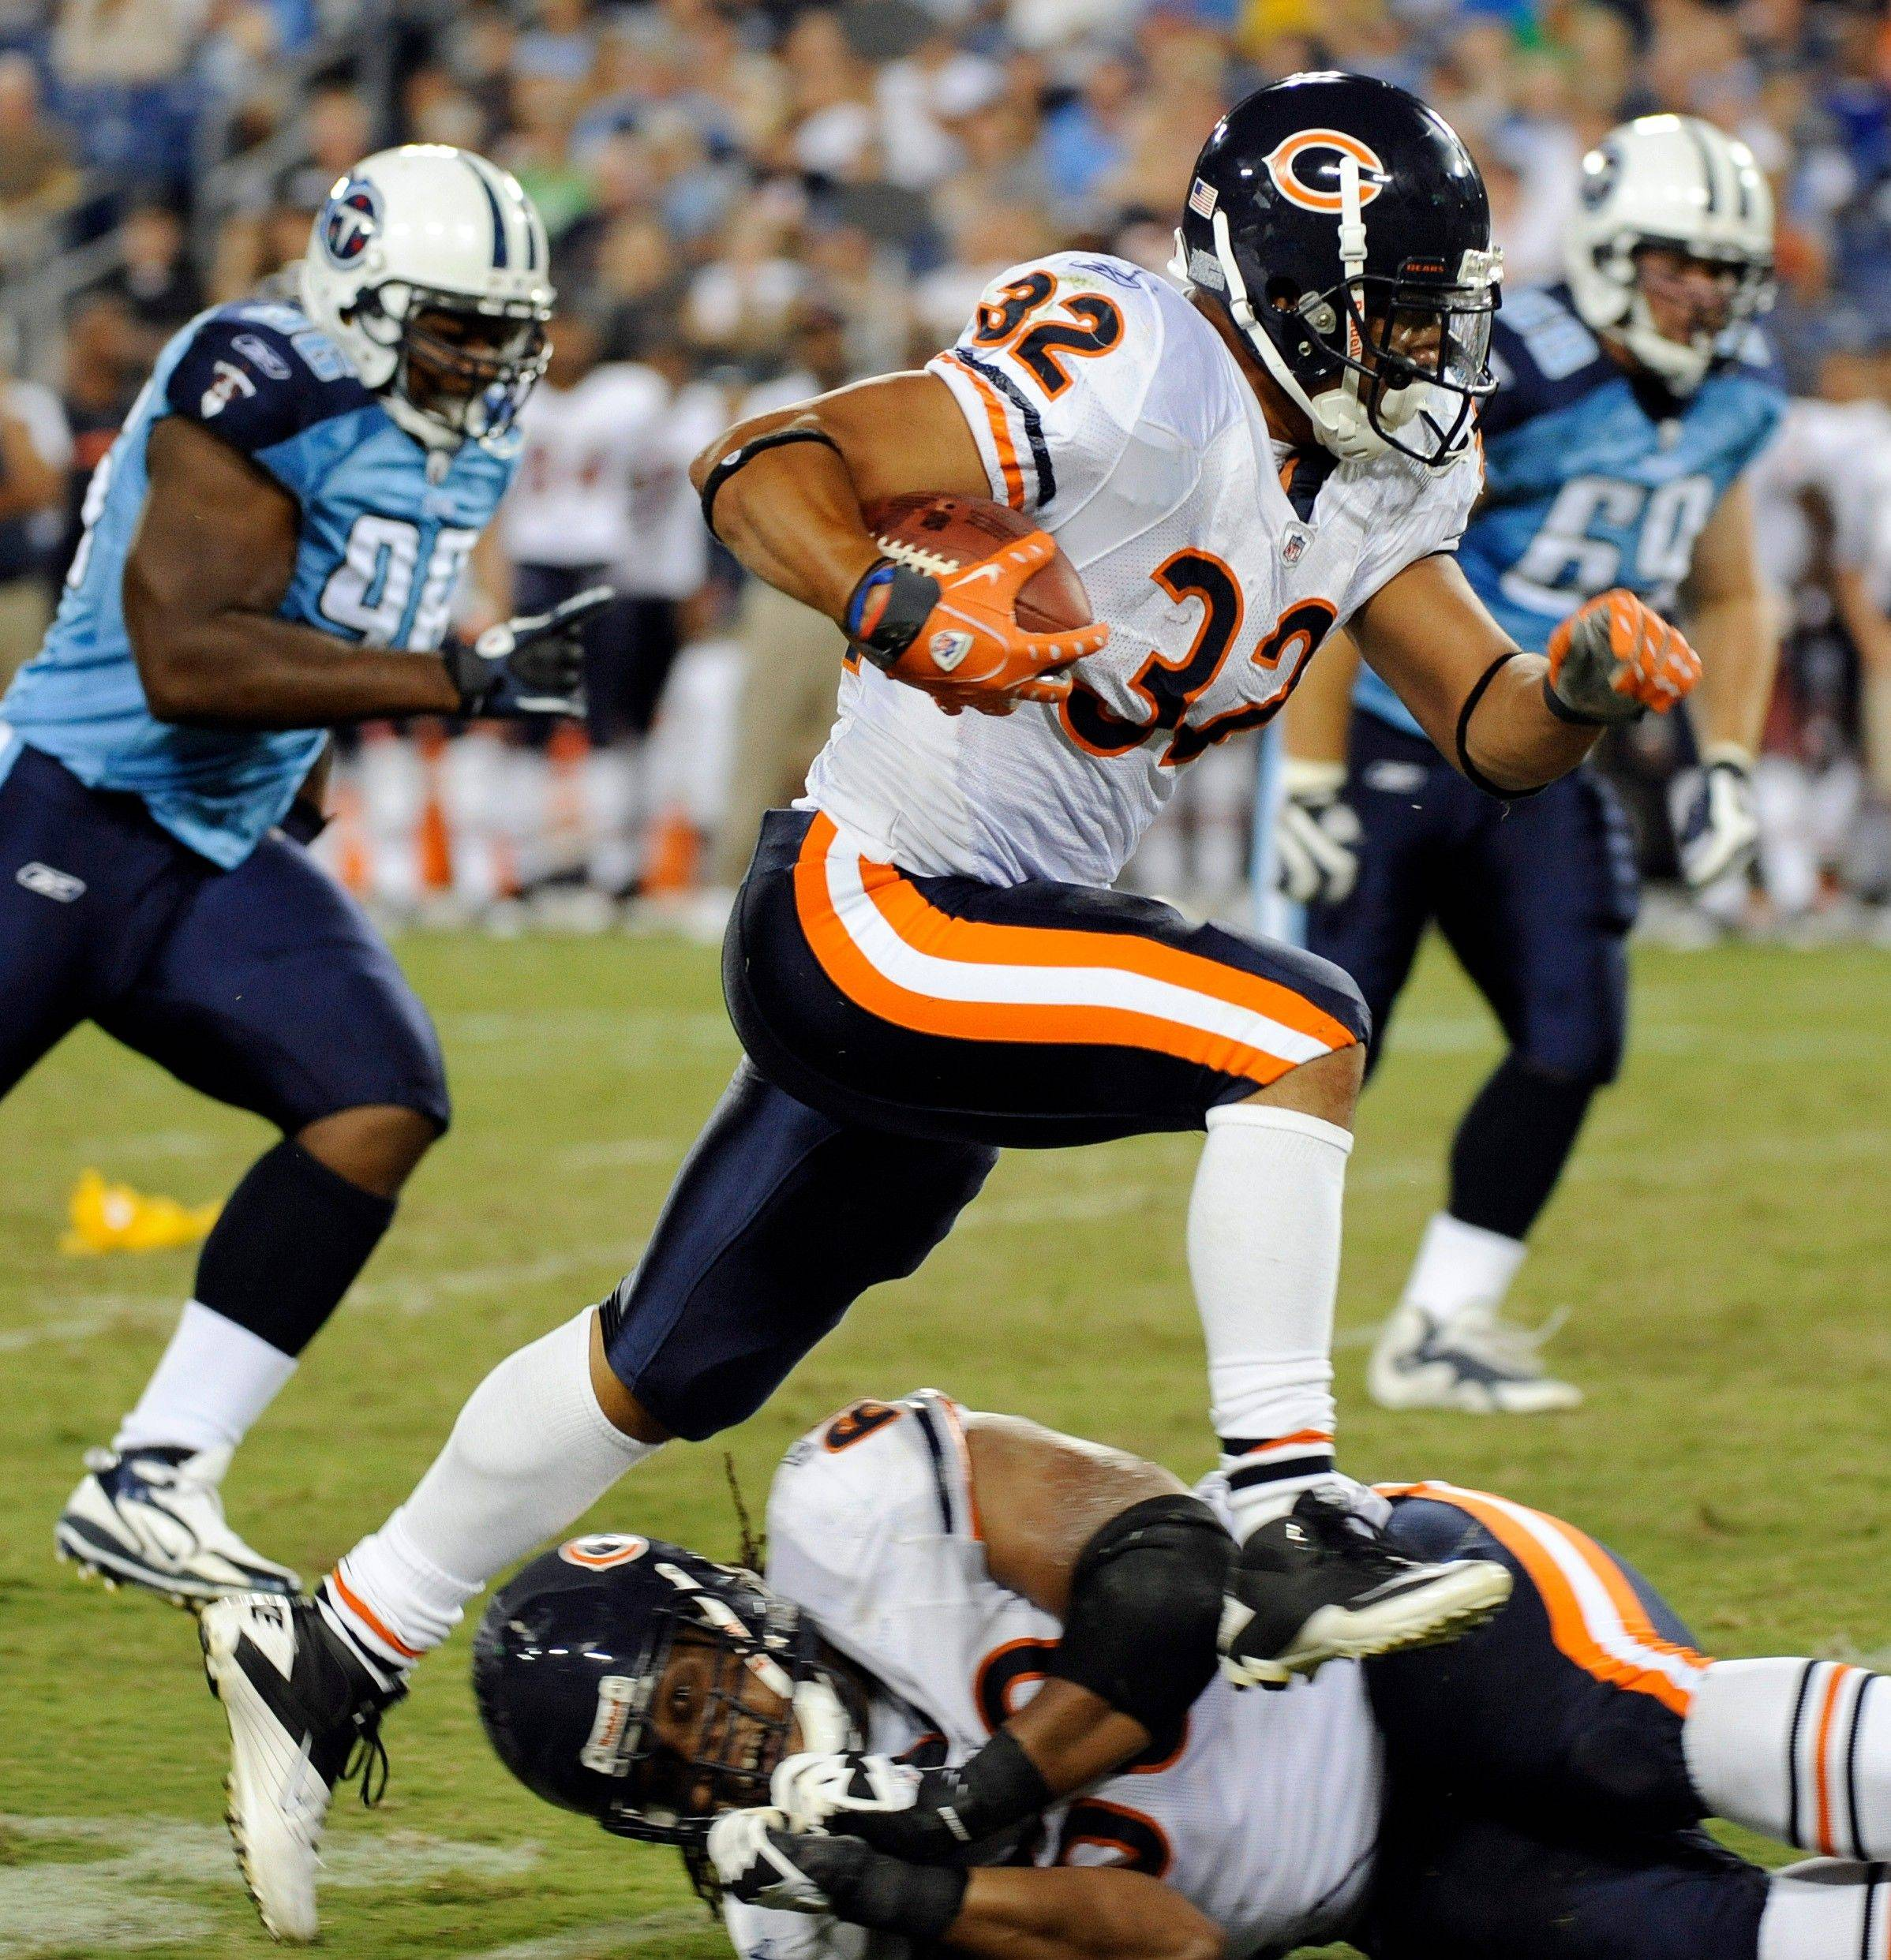 Bears running back Kahlil Bell leads the team with 28 preseason rushing attempts.